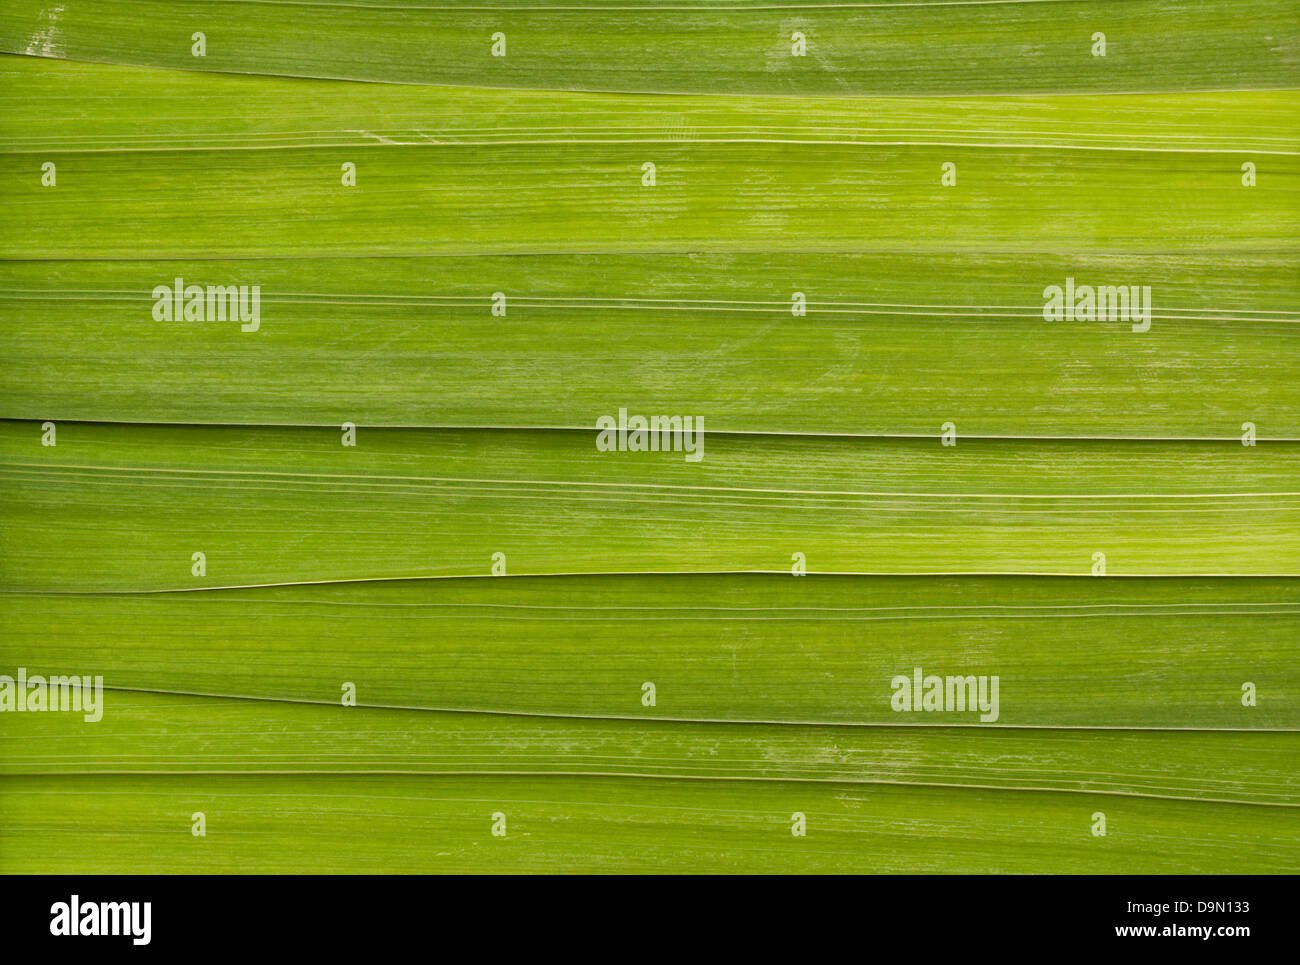 Long leaf detail background great for health spas or relaxing massage rooms - Stock Image